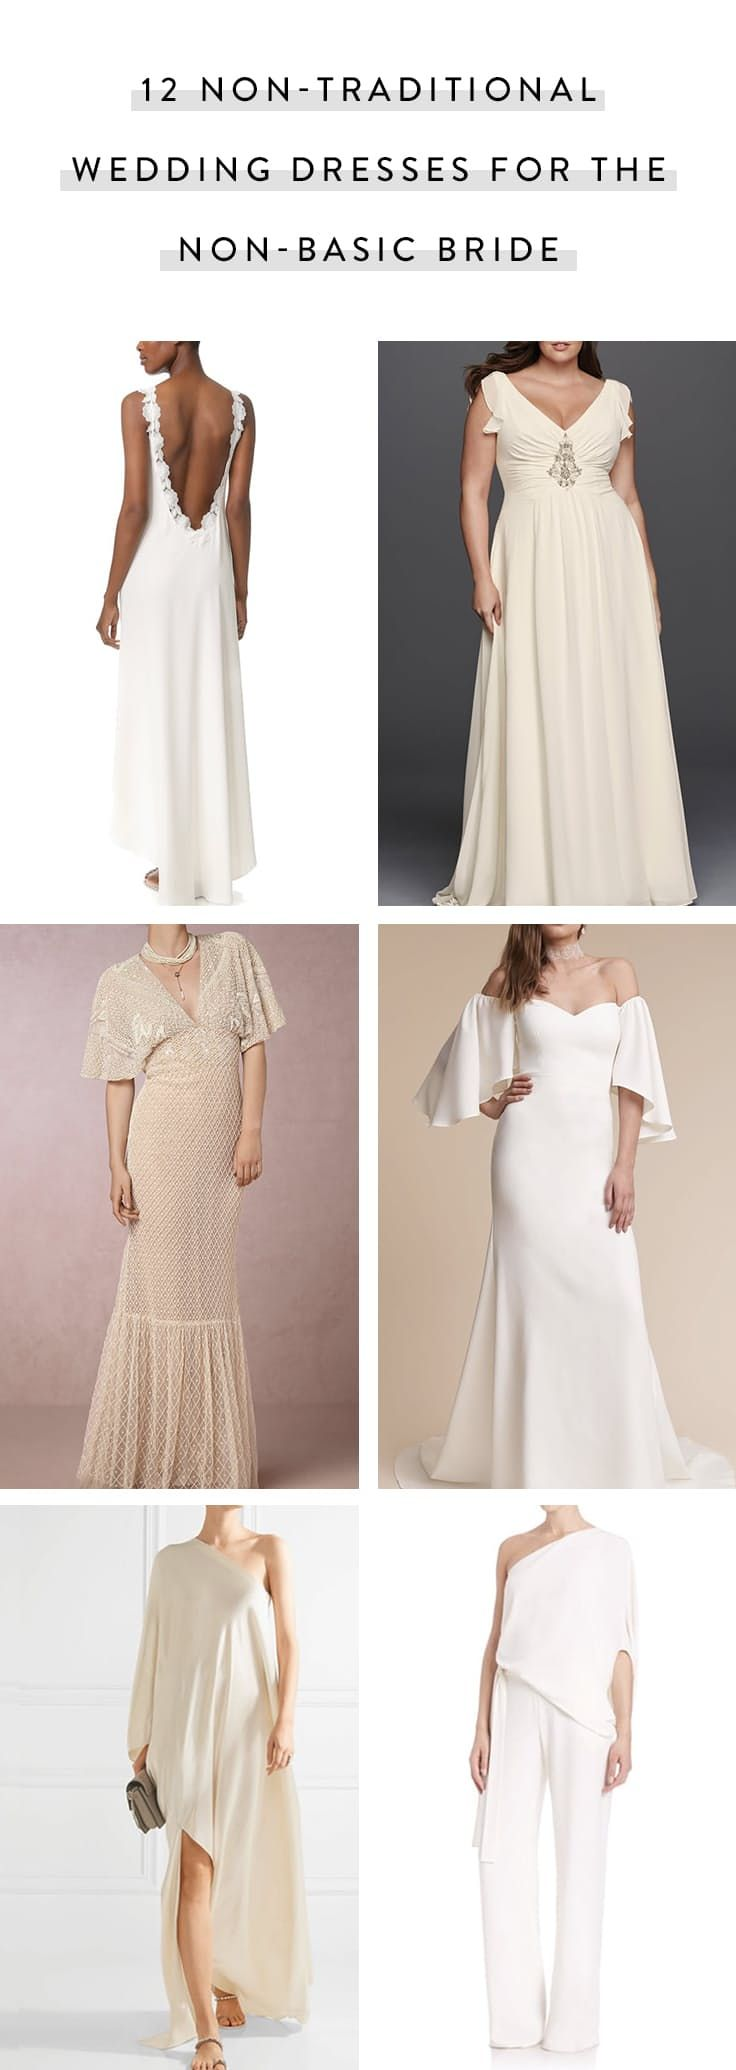 Non traditional wedding dress   NonTraditional Wedding Dresses for the NonBasic Bride